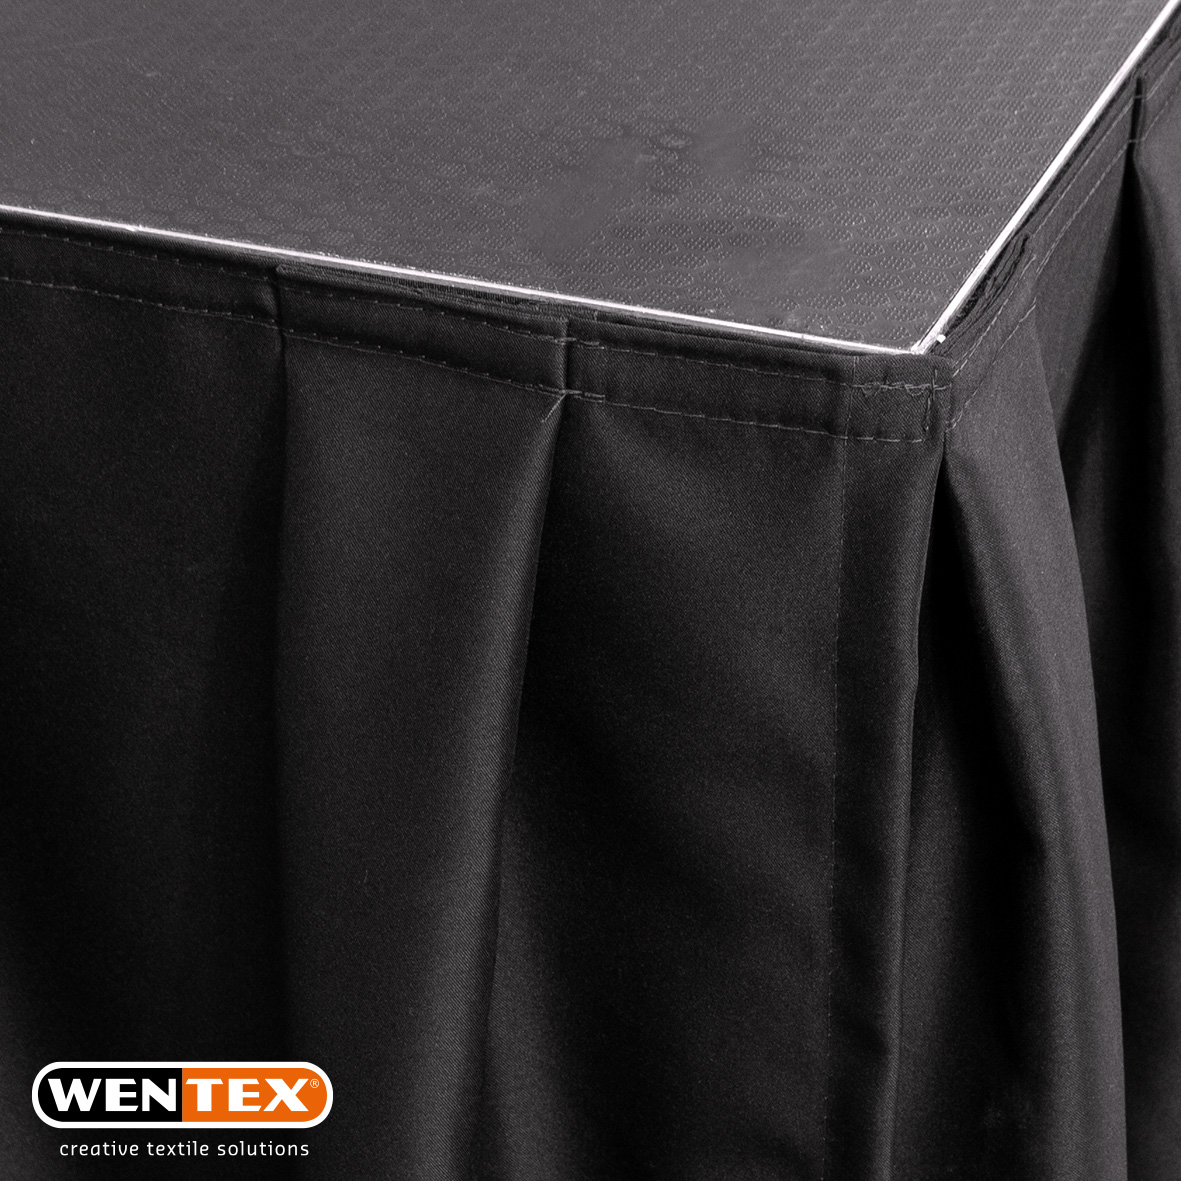 WENTEX Stageskirt pleated detail 2